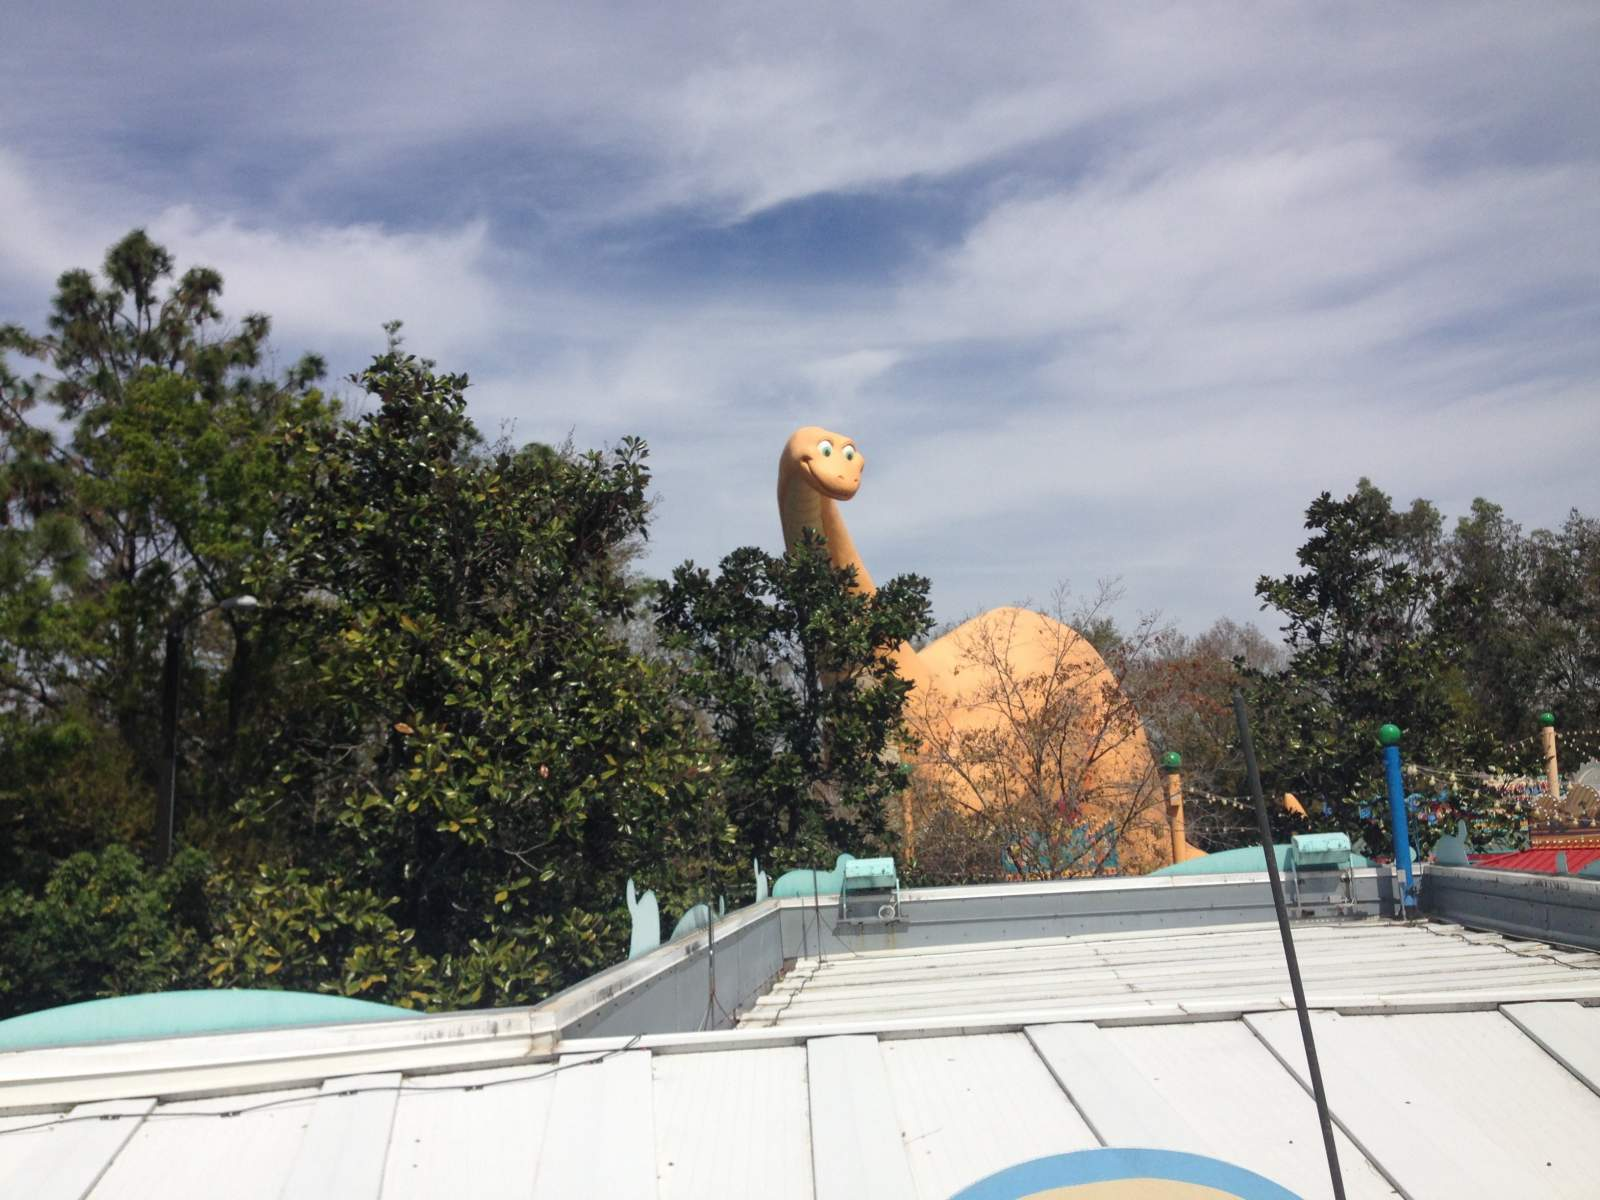 dino land at disney's animal kingdom with a toddler